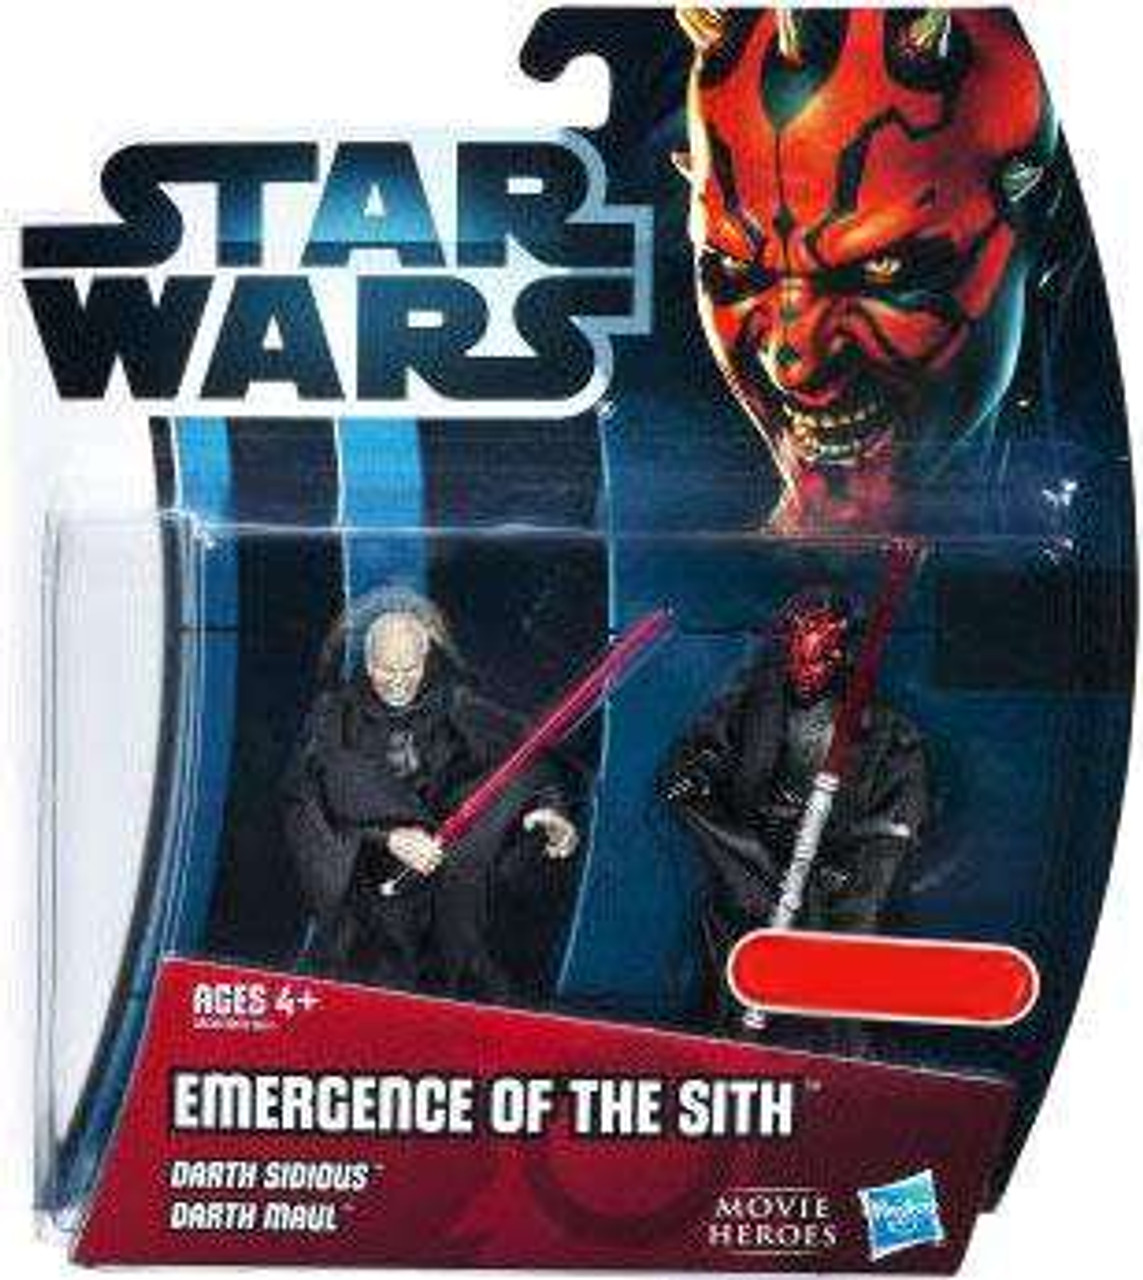 Star Wars The Phantom Menace Movie Heroes 2012 Emergence of the Sith Exclusive Action Figure 2-Pack [Darth Sidious & Darth Maul]